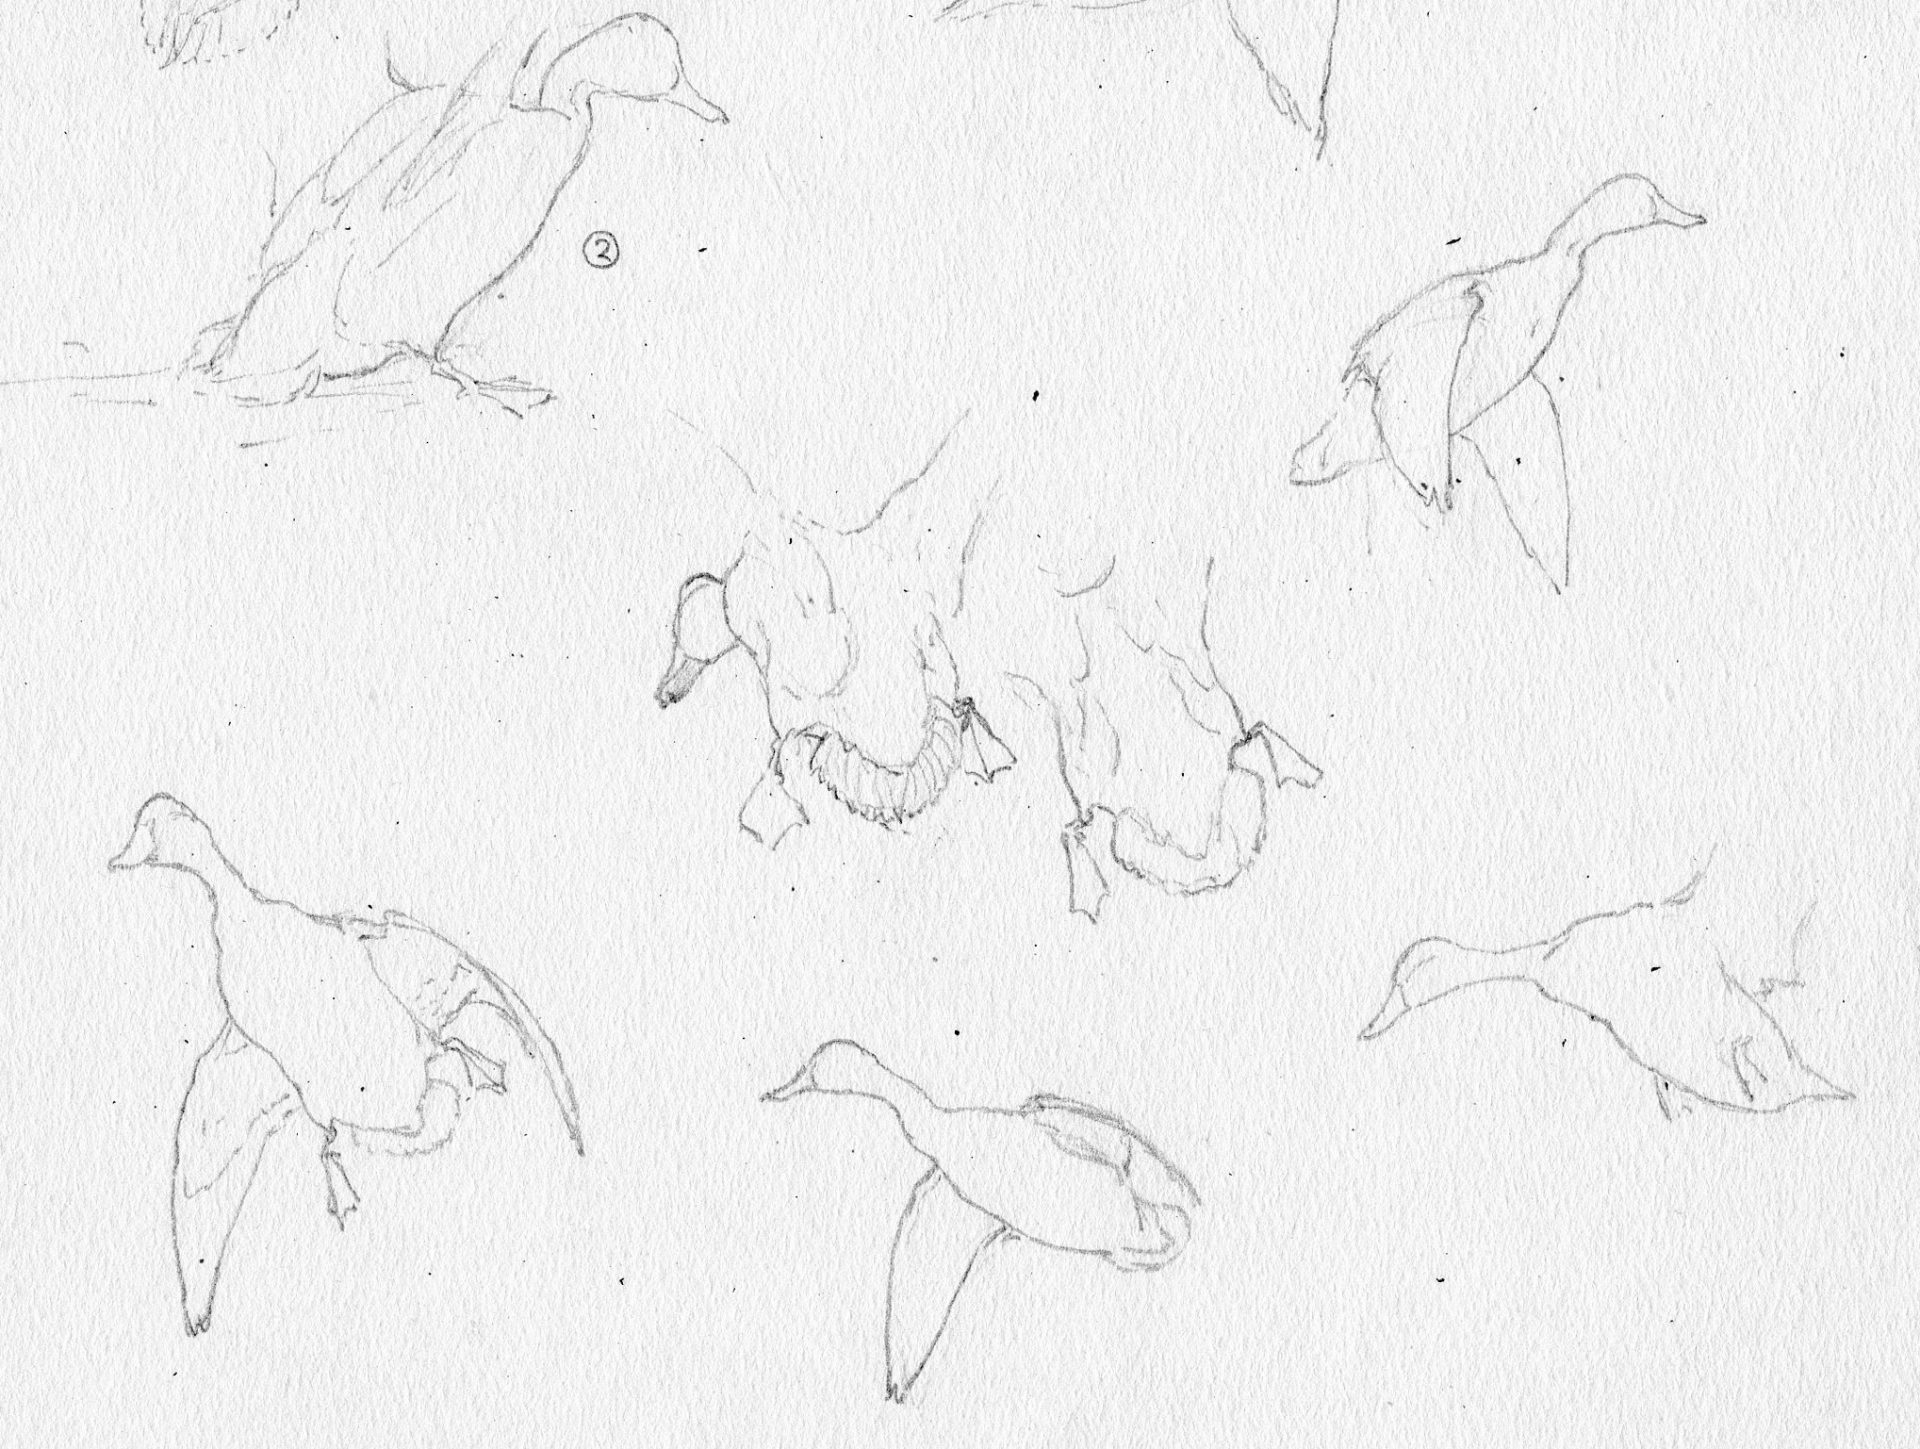 Jaques field notes sketches of black ducks in multiple positions of flight and rest